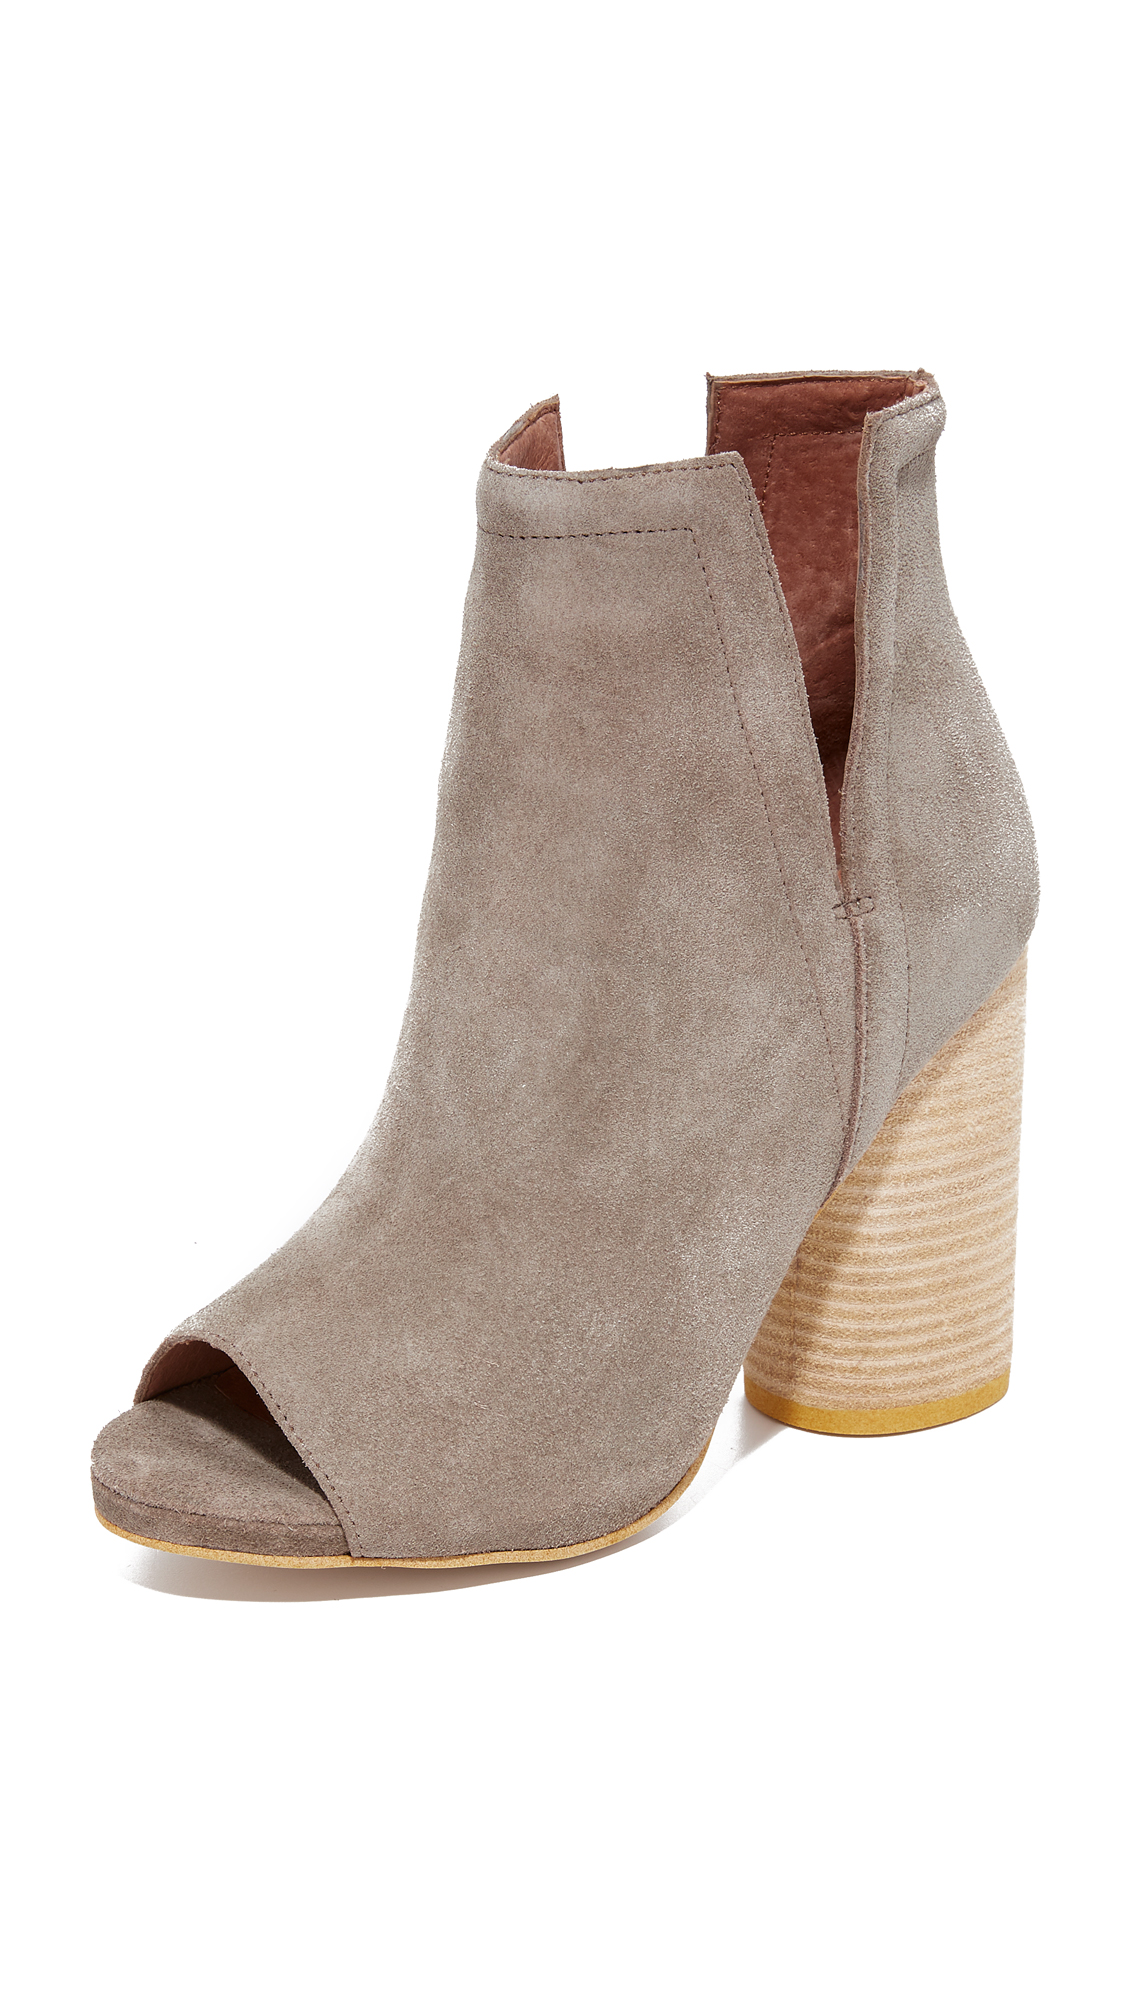 Jeffrey Campbell Oath Peep Toe Booties - Grey